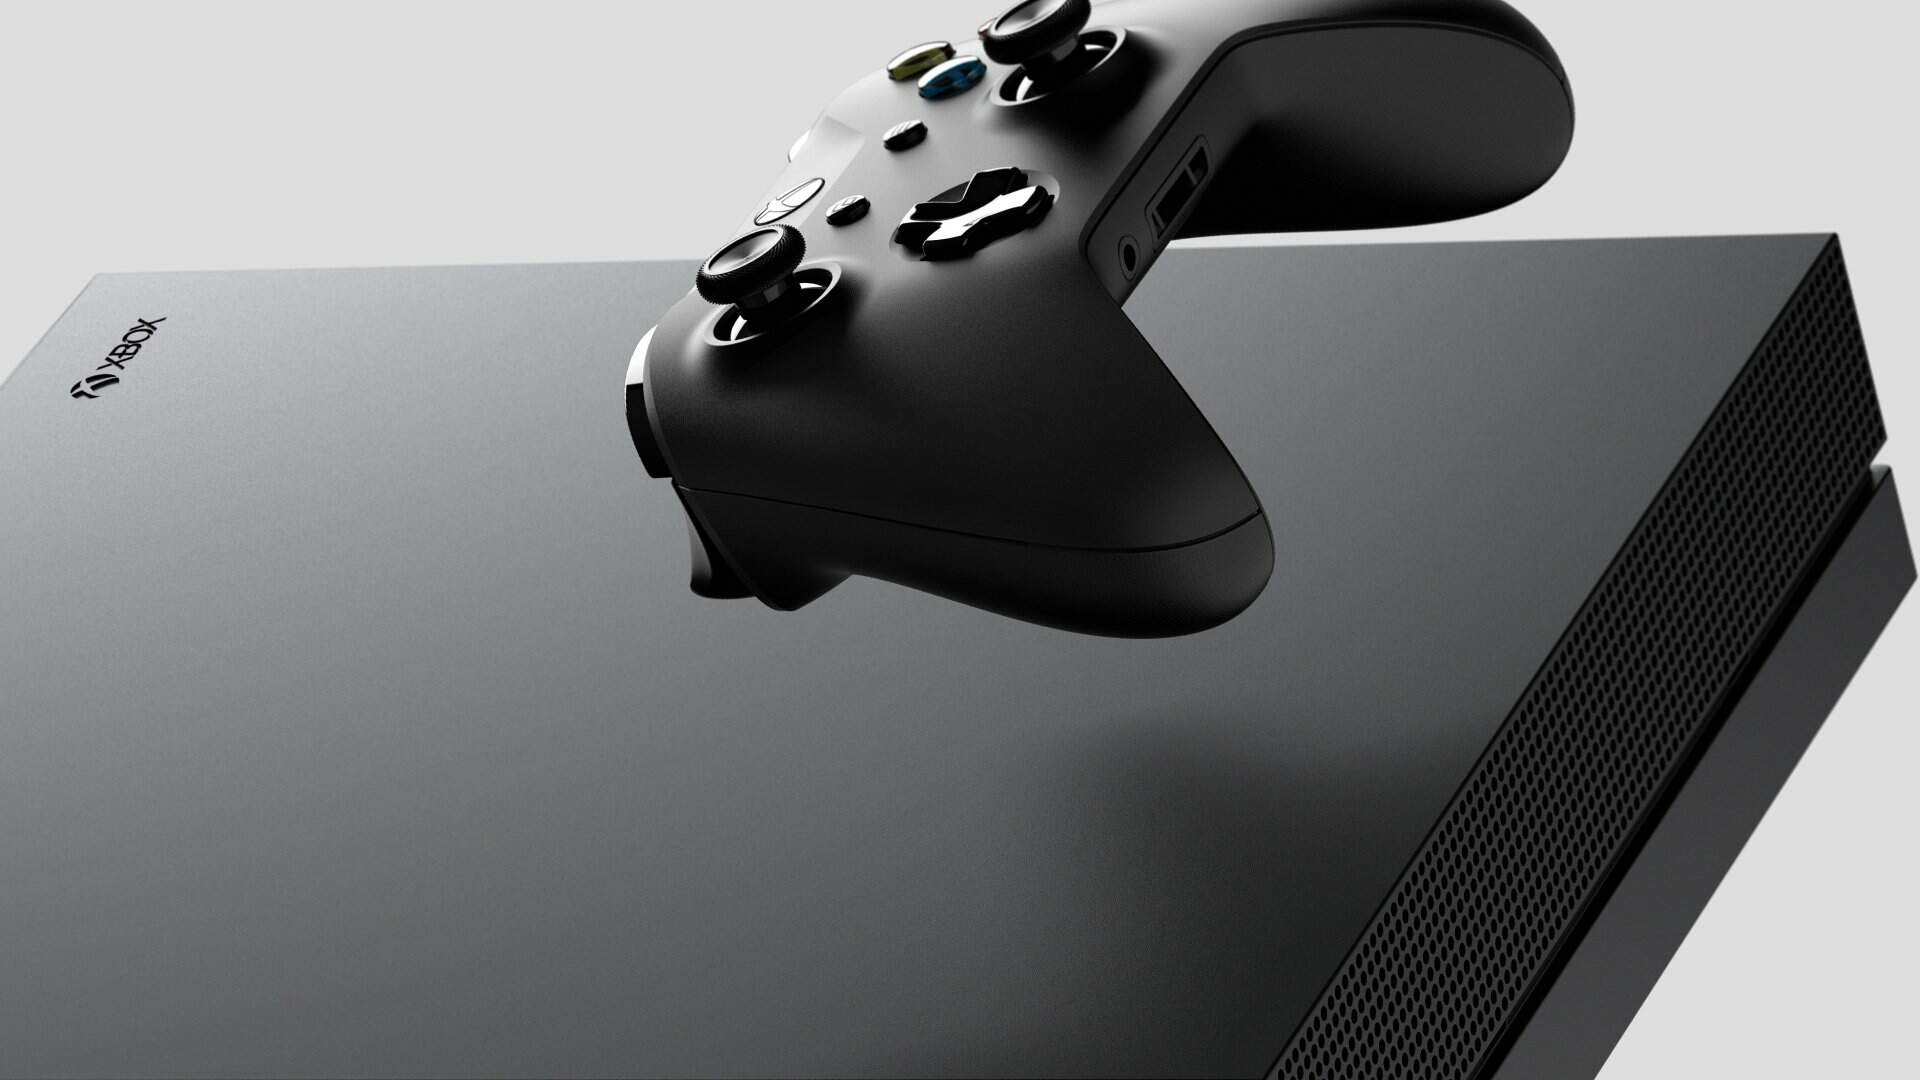 Microsoft Sees Decreased Hardware Sales as This Console Generation Comes to a Close